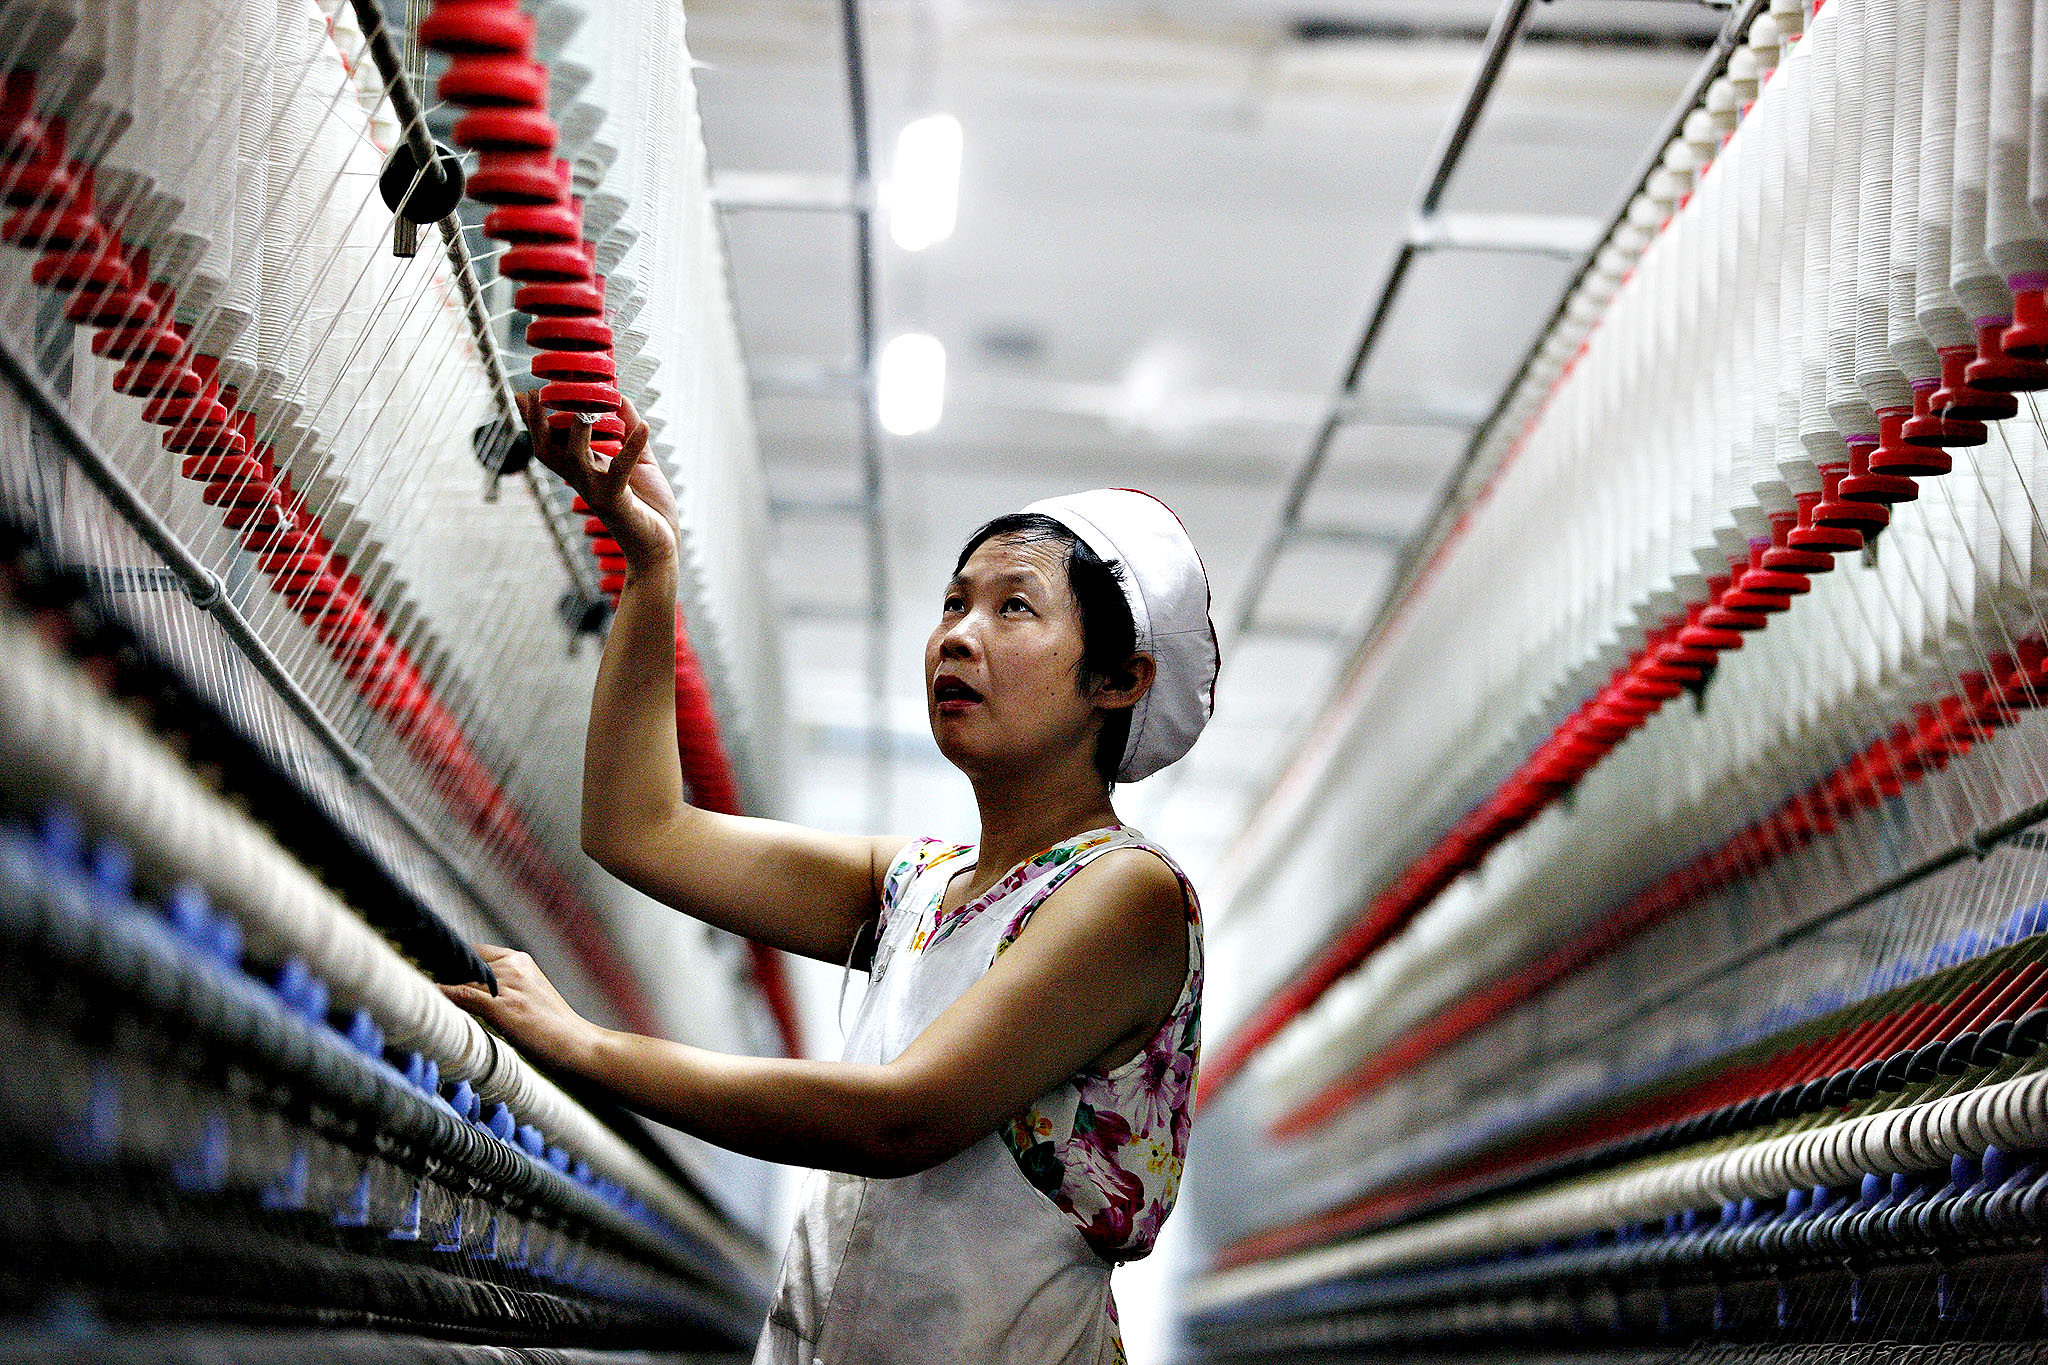 An employee works in a textile factory in Huaibei, east China's Anhui province on Thursday. China's manufacturing activity expanded at its strongest pace in seven months in October, British banking giant HSBC said, adding to evidence the world's second-largest economy is recovering.